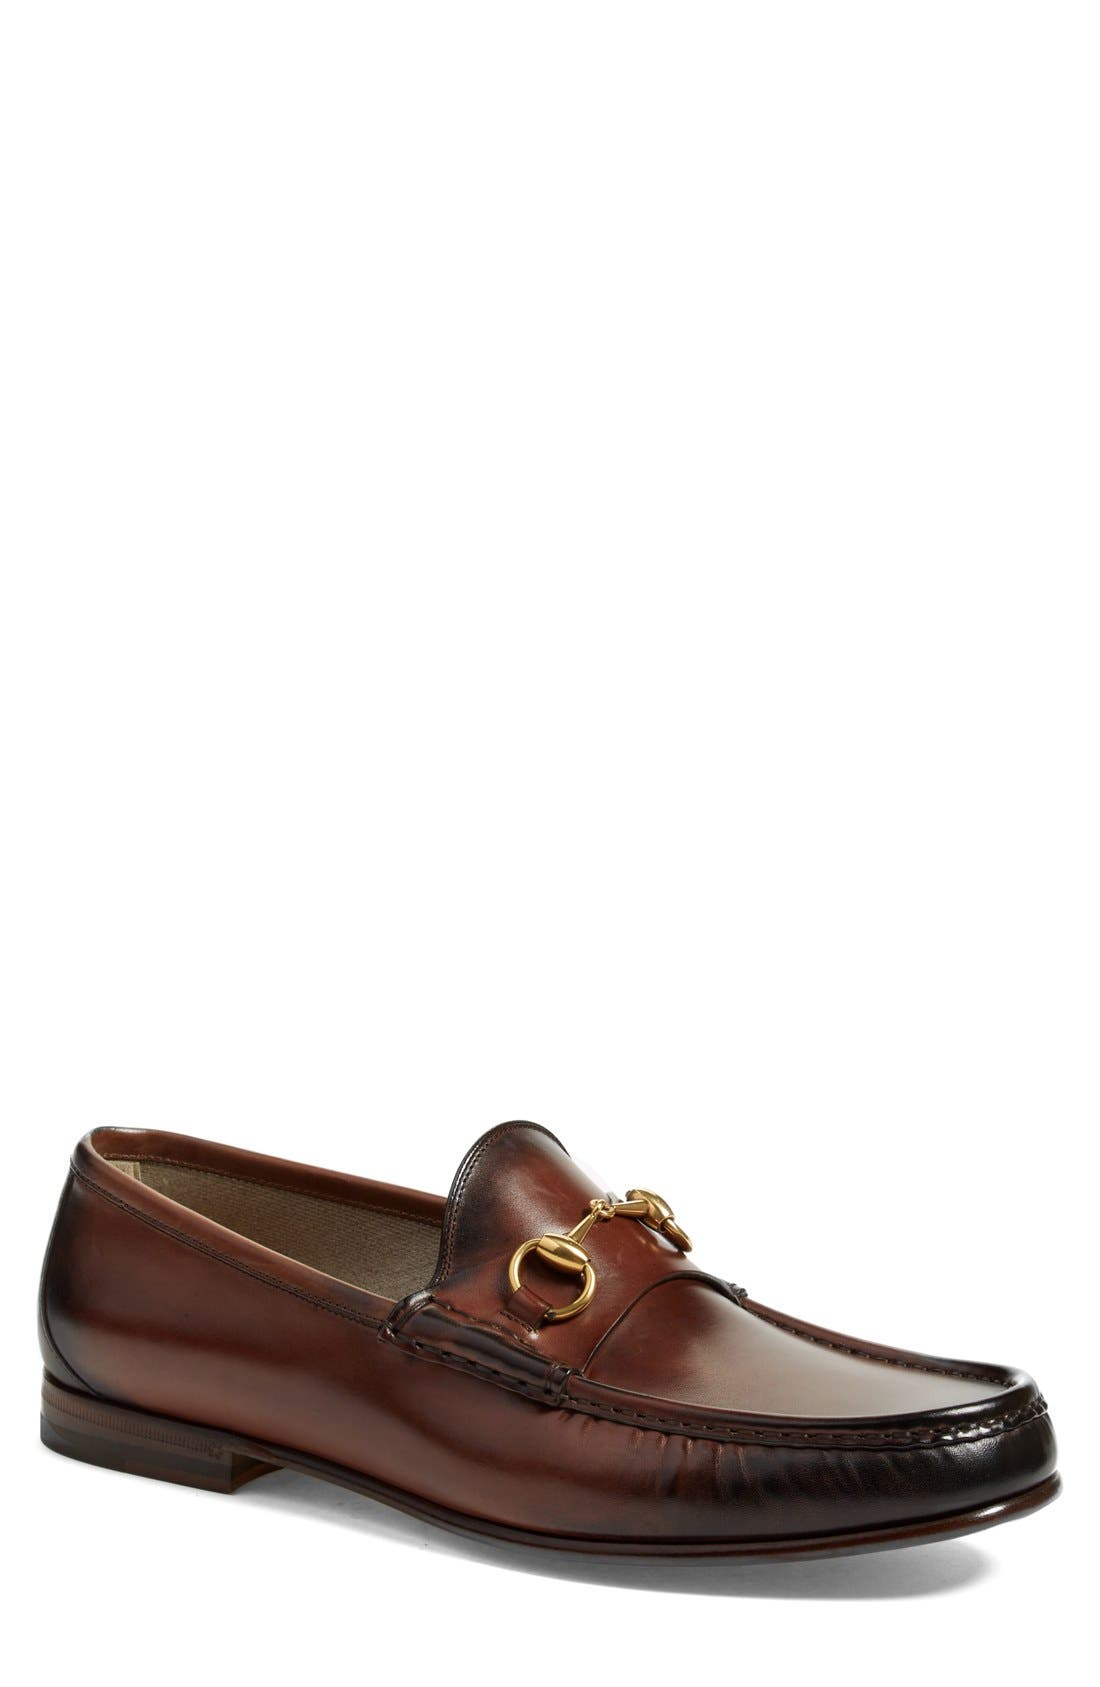 Main Image - Gucci 'Roos' Bit Loafer (Men)